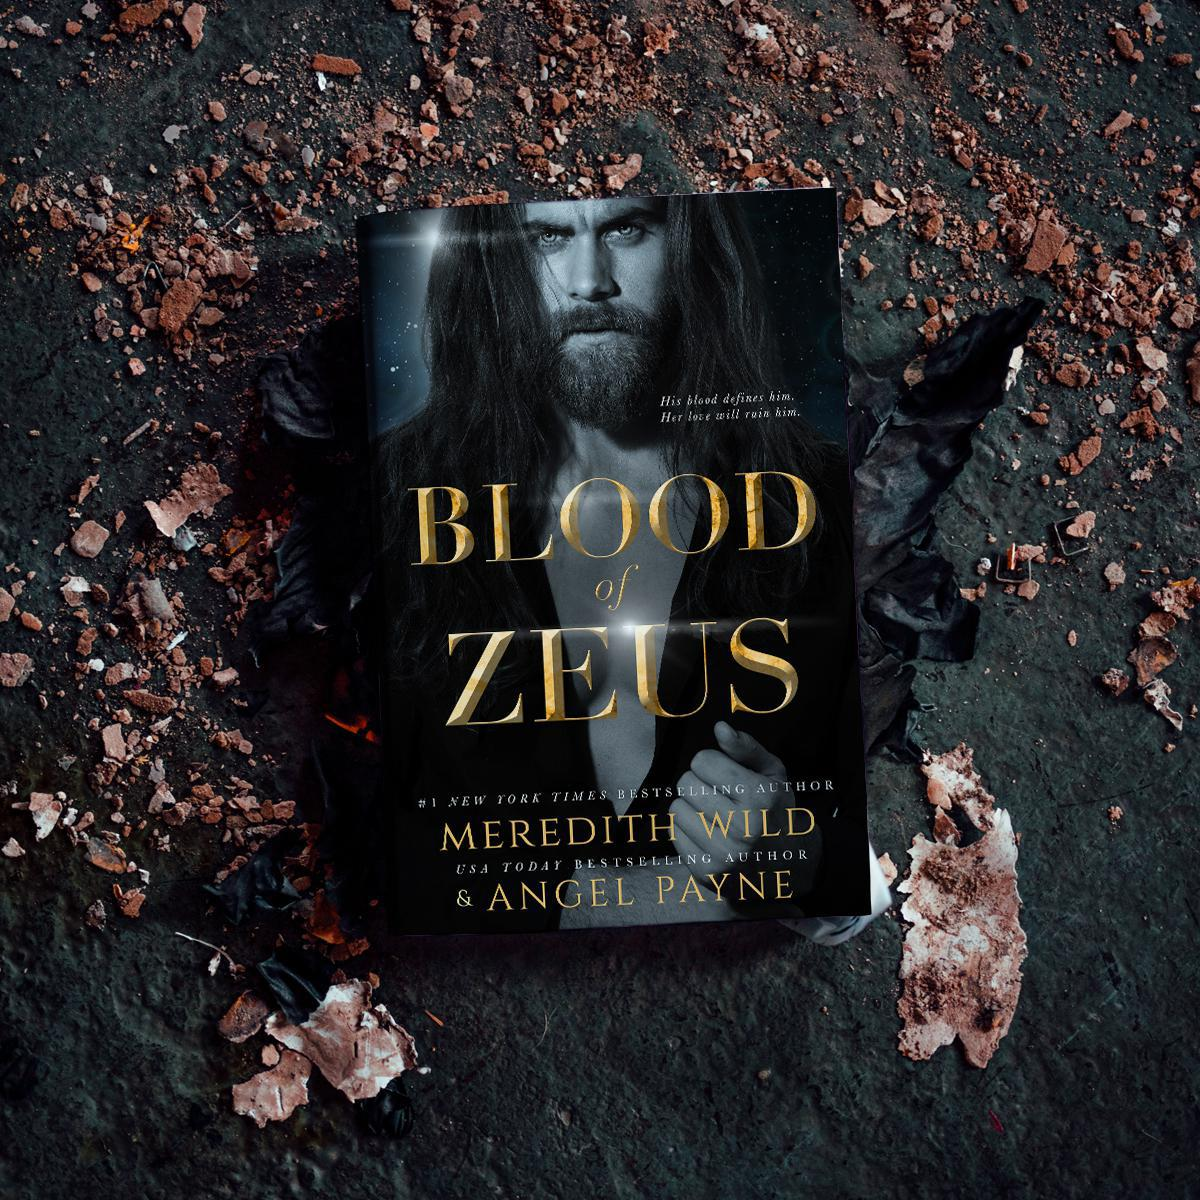 💗 Blood of Zeus by Meredith Wild & Angel Payne - Signed!